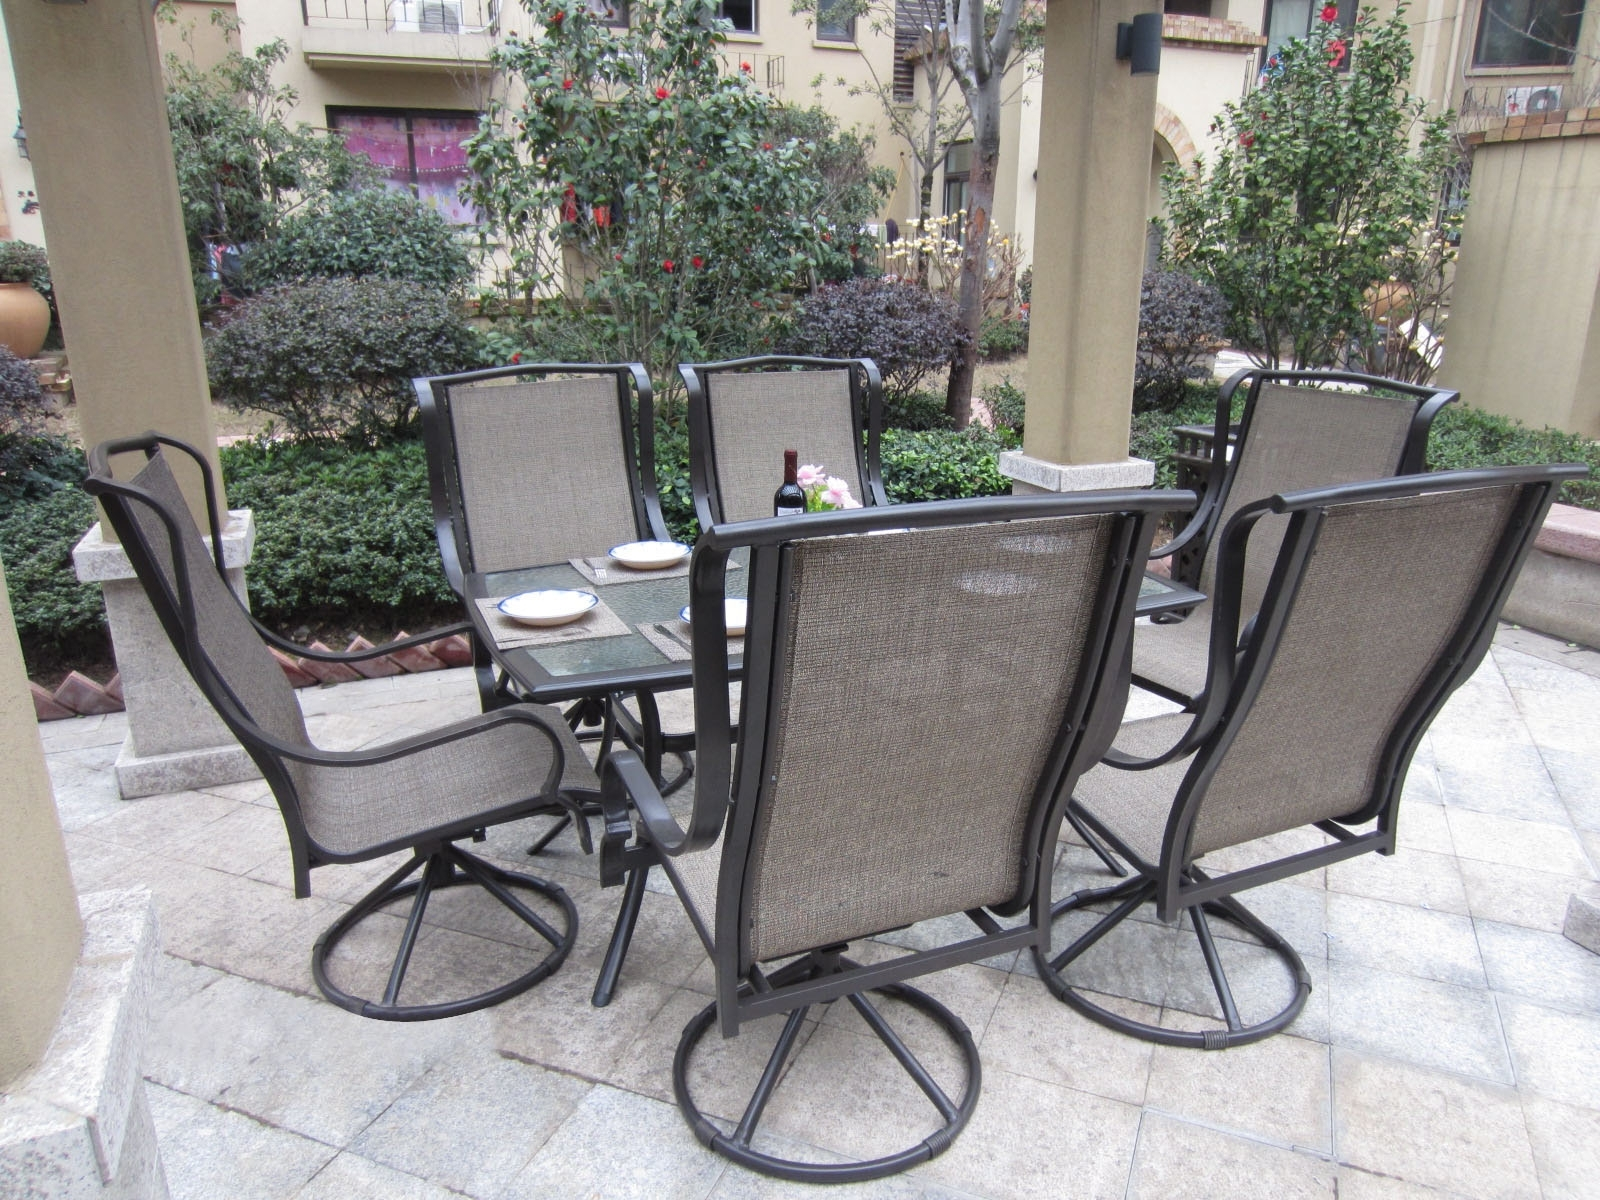 Most Popular Patio Conversation Sets With Rockers In Patio : Small Patio Furniture Beautiful Outdoor Patio Furniture Sets (View 9 of 20)